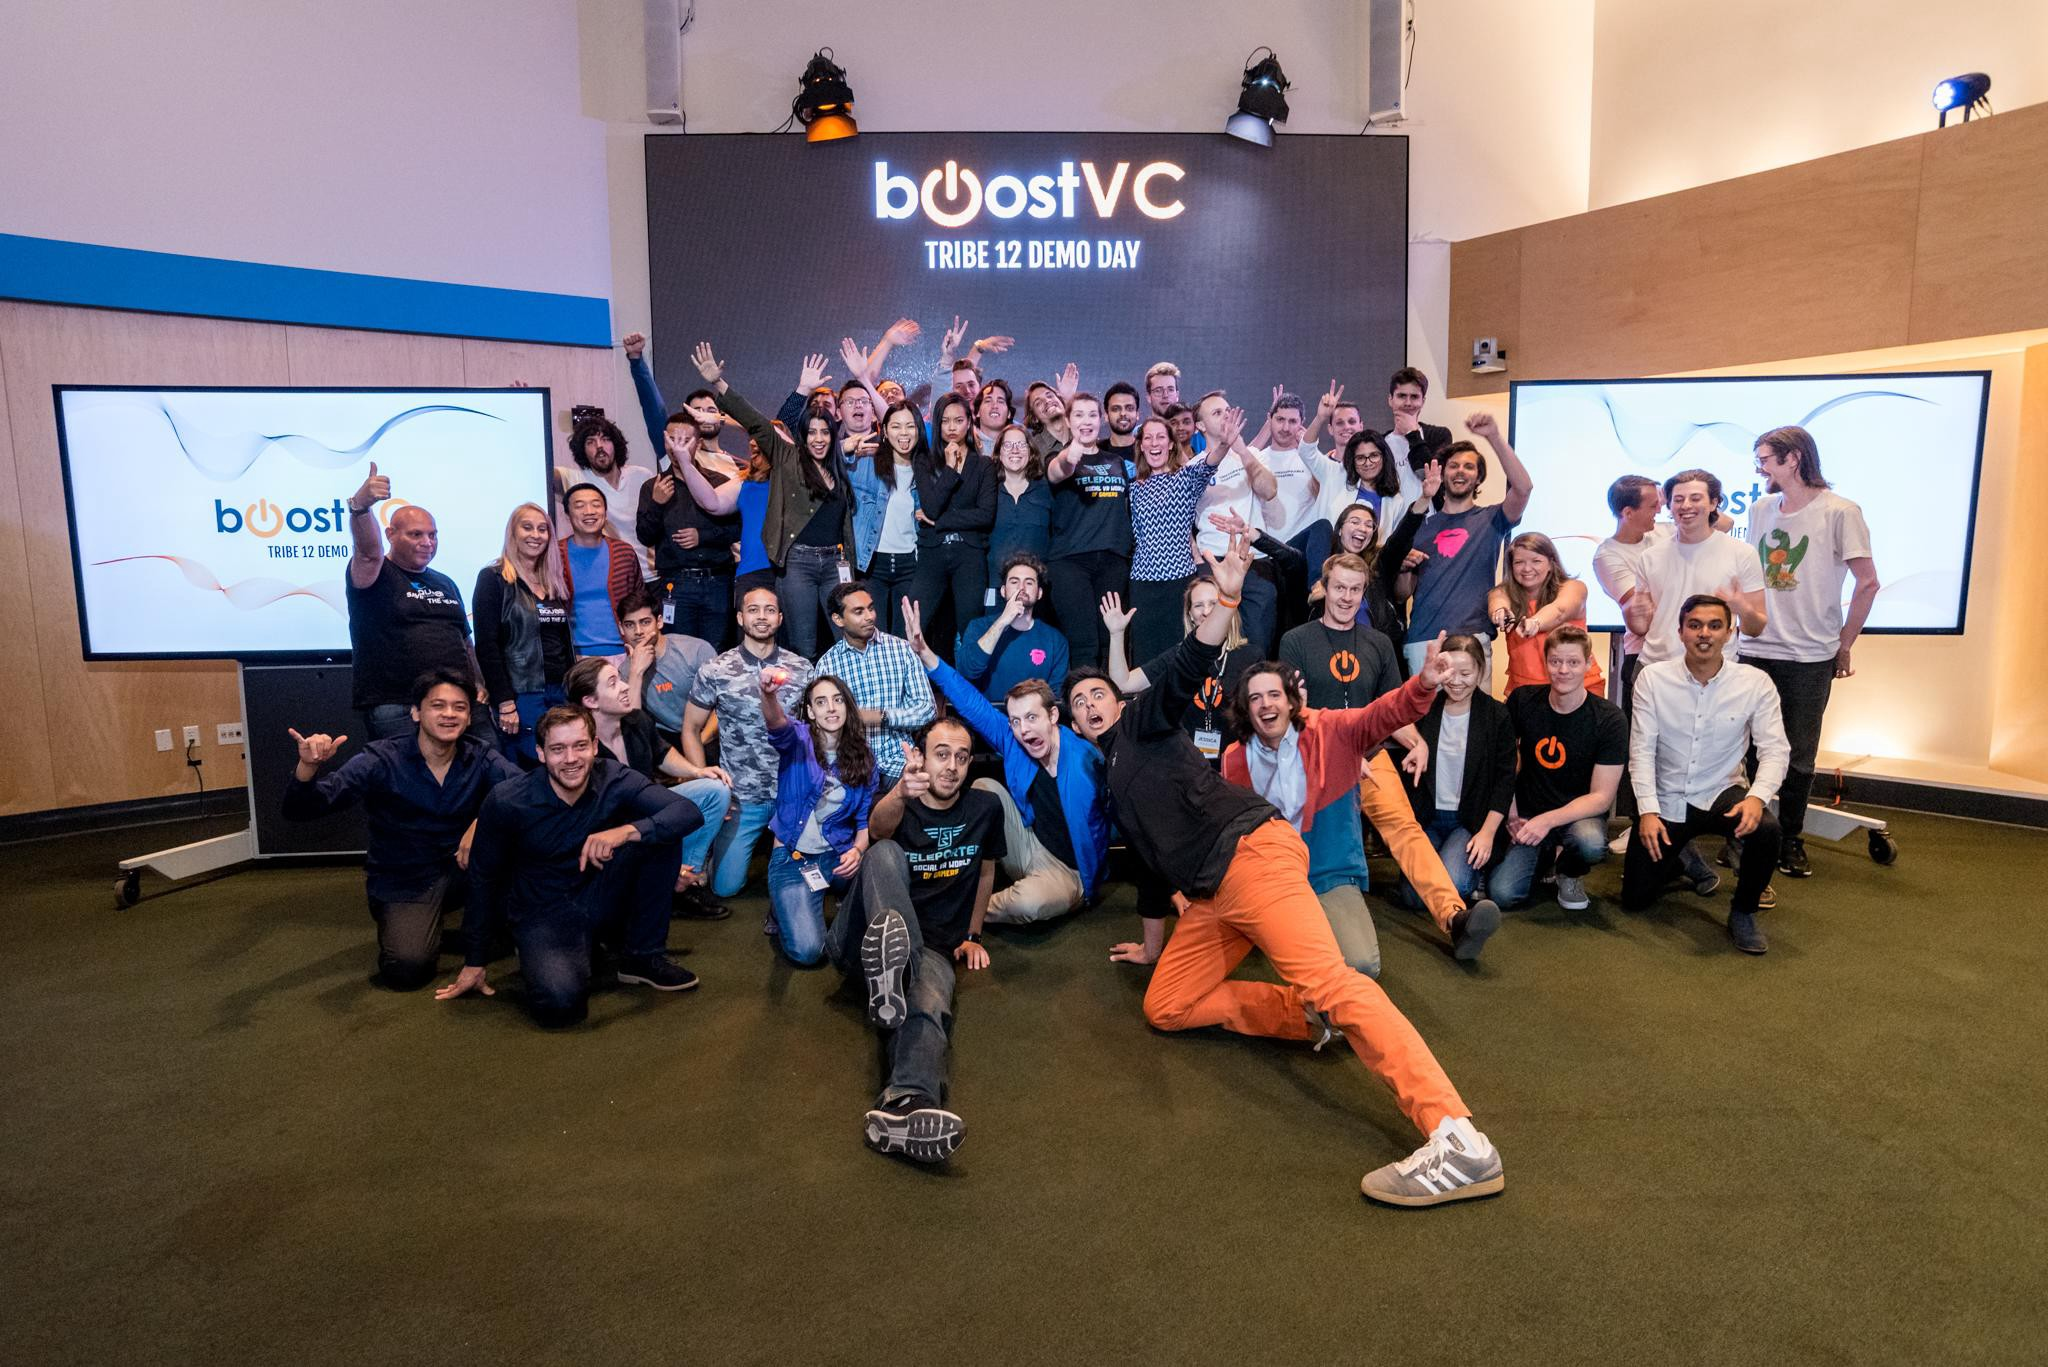 Boost VC Tribe 12 on DemoDay